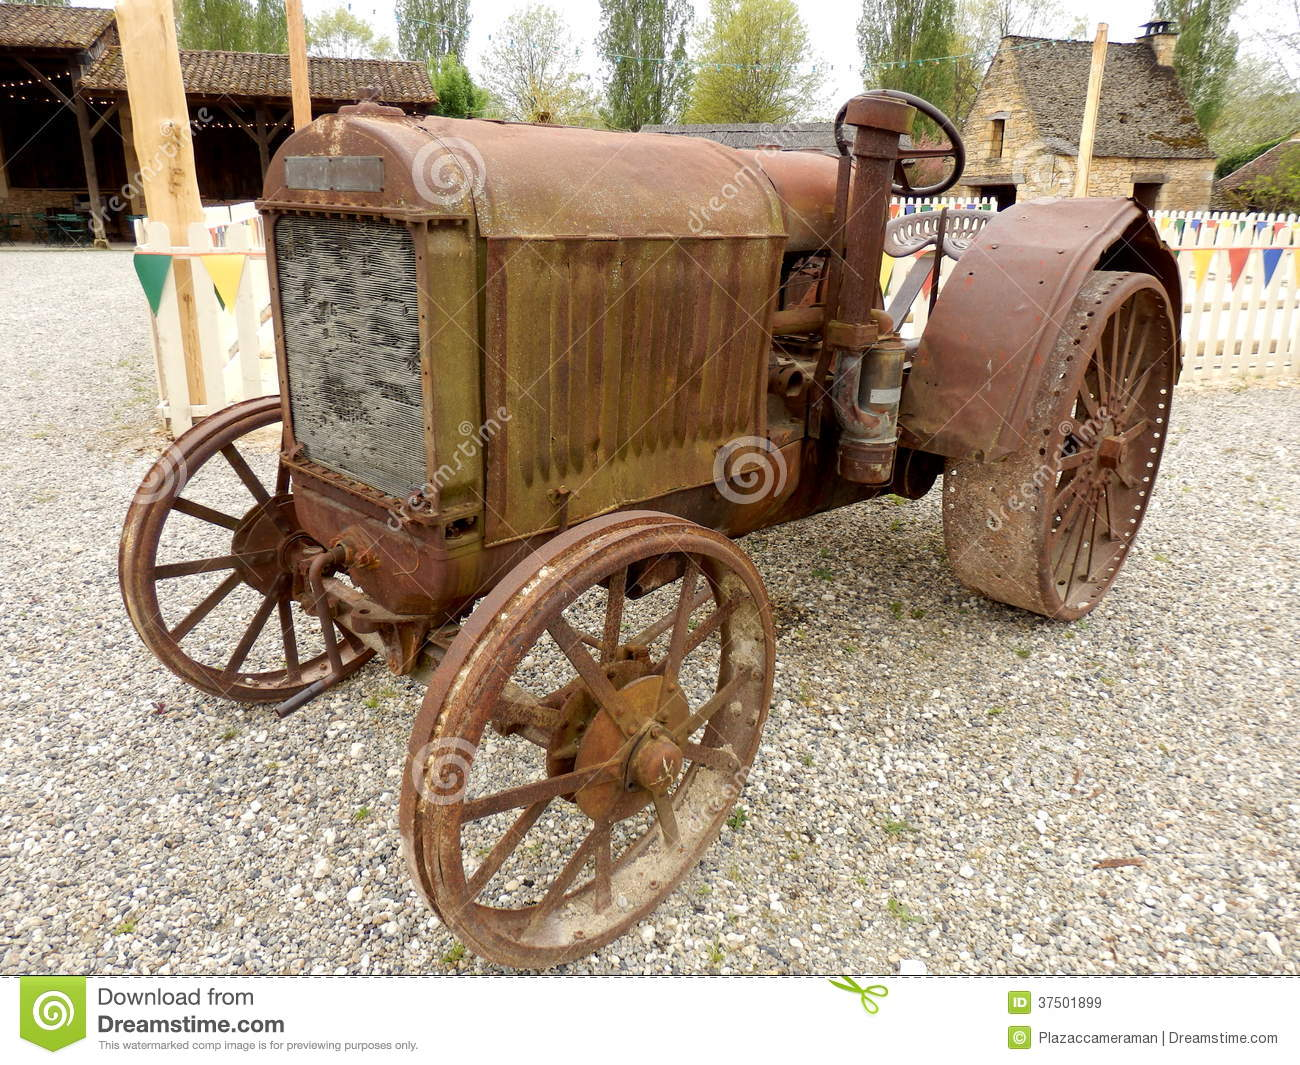 Antique Tractor Steel Wheels : List of synonyms and antonyms the word old tractor wheels